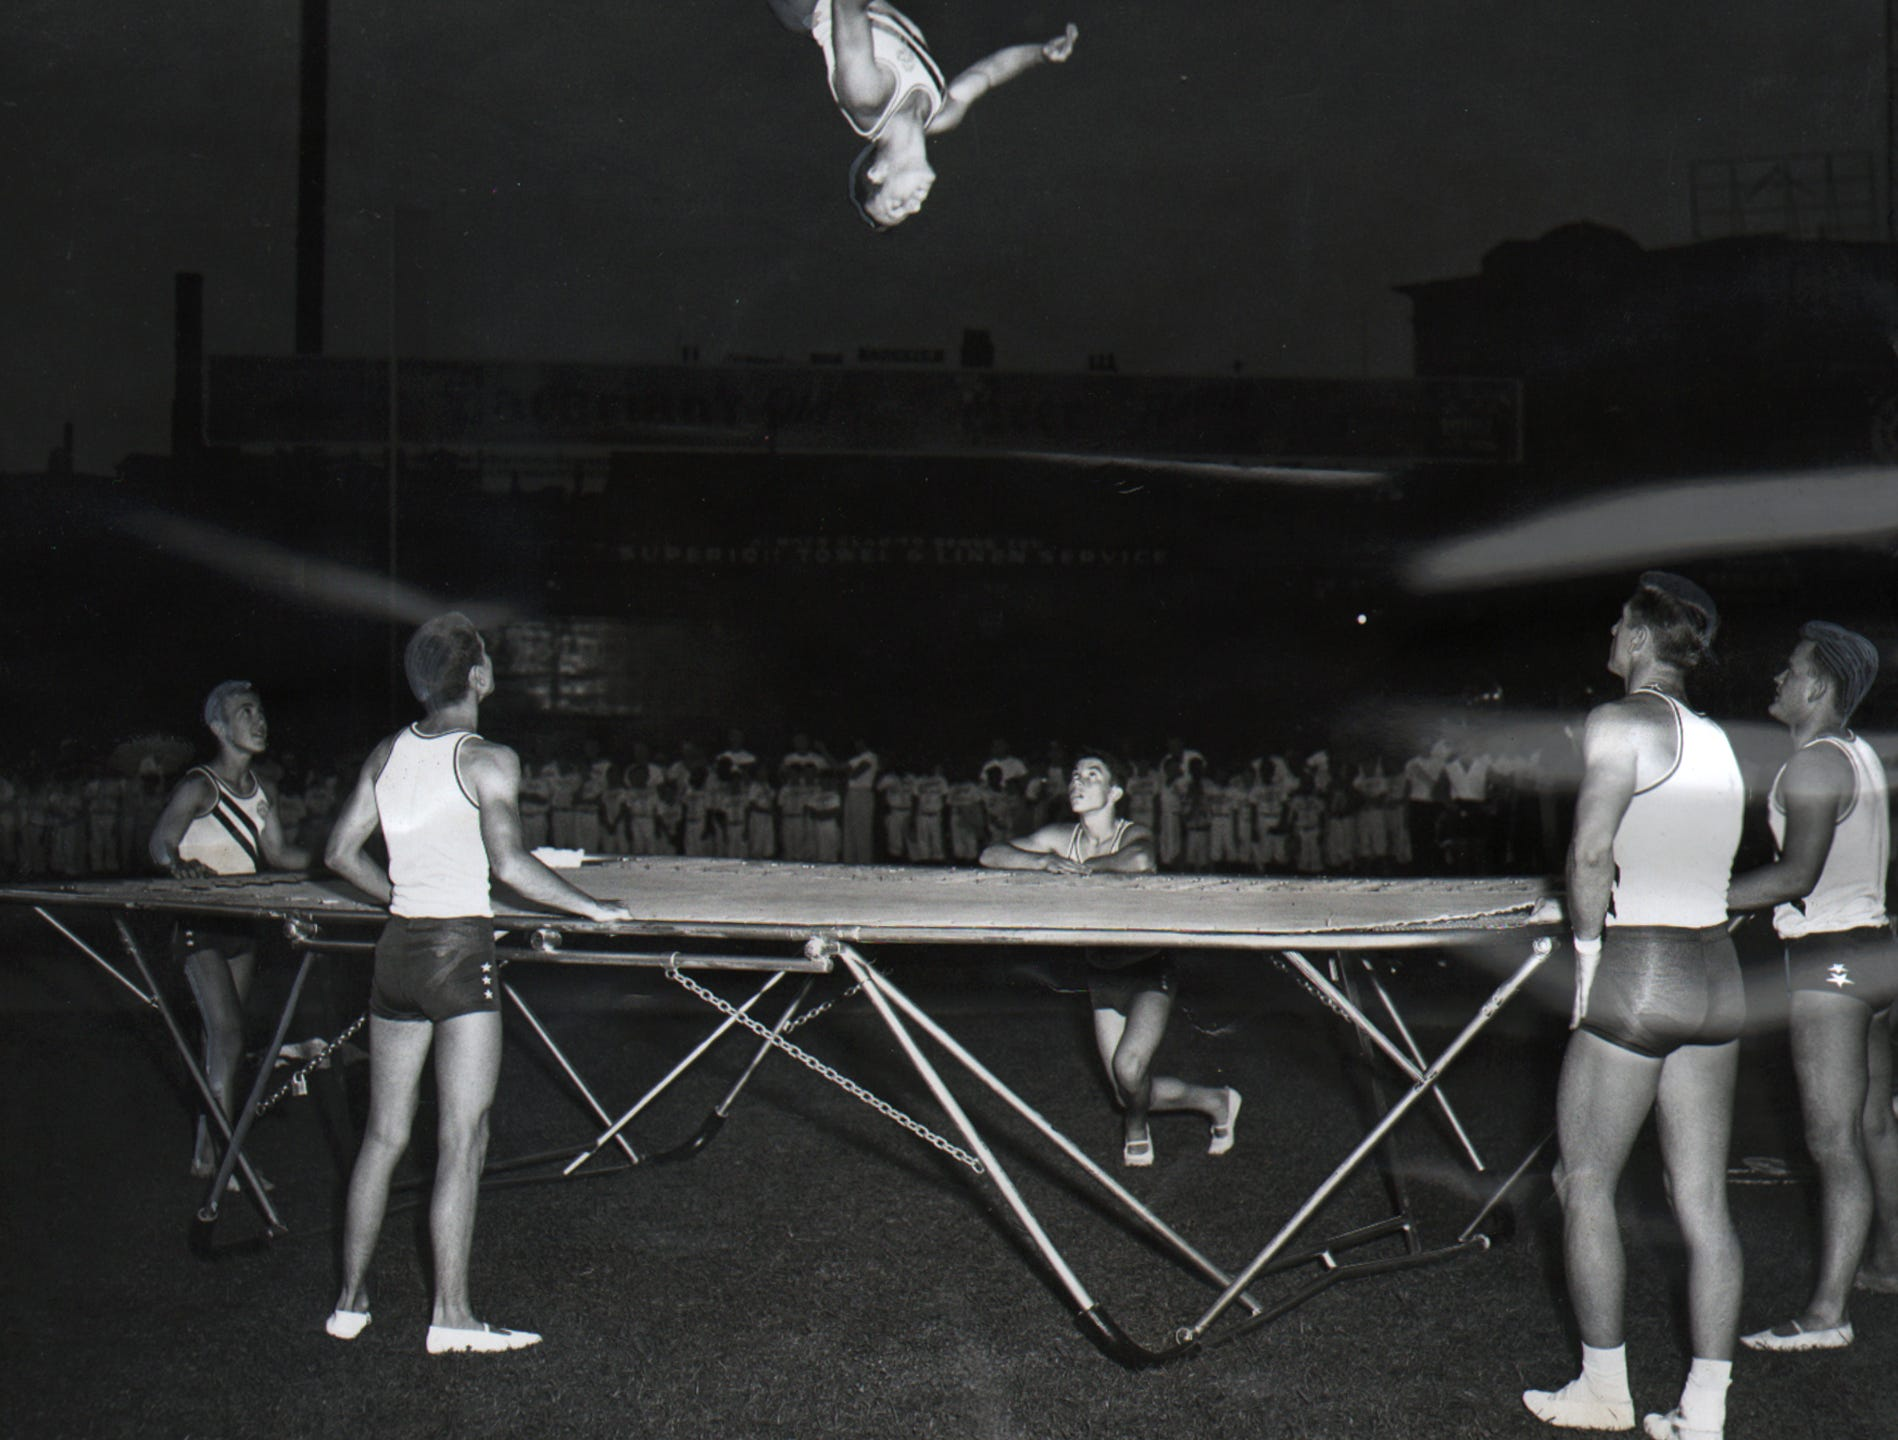 "The Hamilton High School tumbling team flips and twists for Butler County's tow ""prides,"" Joe Nuxhall, Hamilton pitcher for the Reds, and Walter Alston, manager of the Dodgers at Crosley Field."